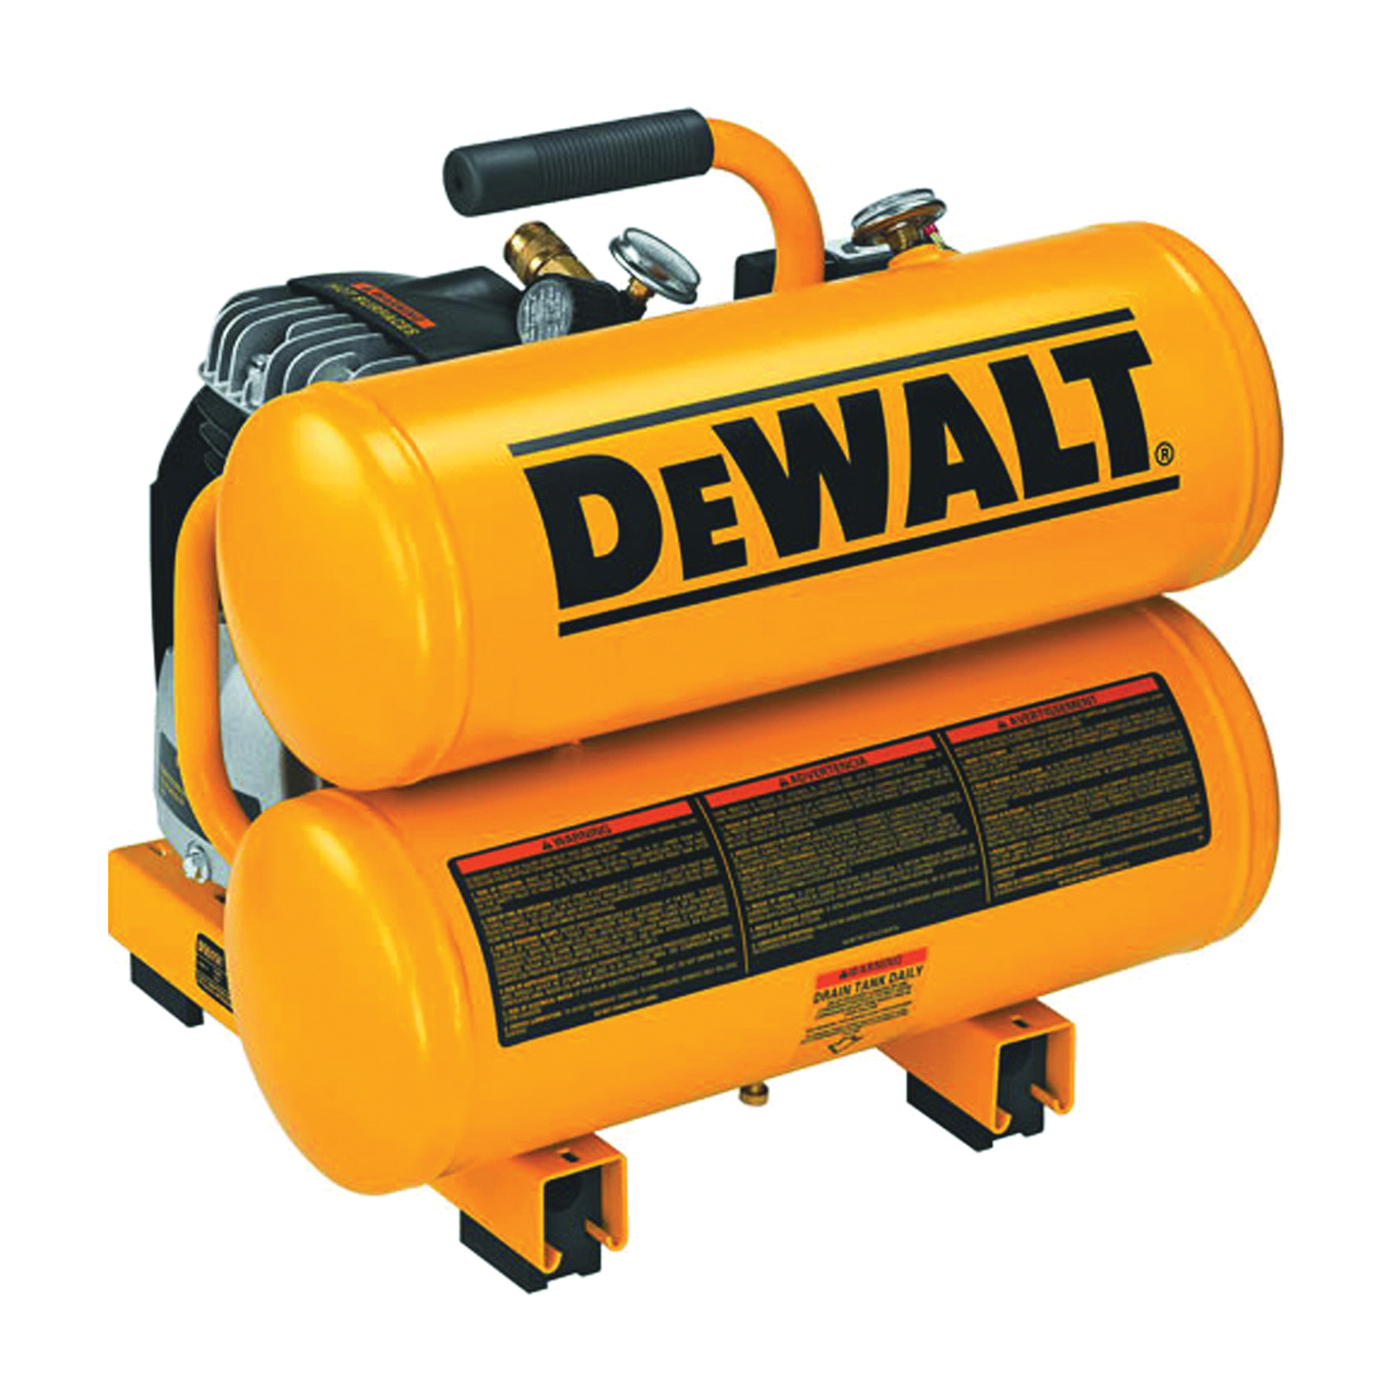 Picture of DeWALT D55151 Portable Air Compressor, 4 gal Tank, 1.1 hp, 120 V, 125 psi Pressure, 3.2 cfm Air